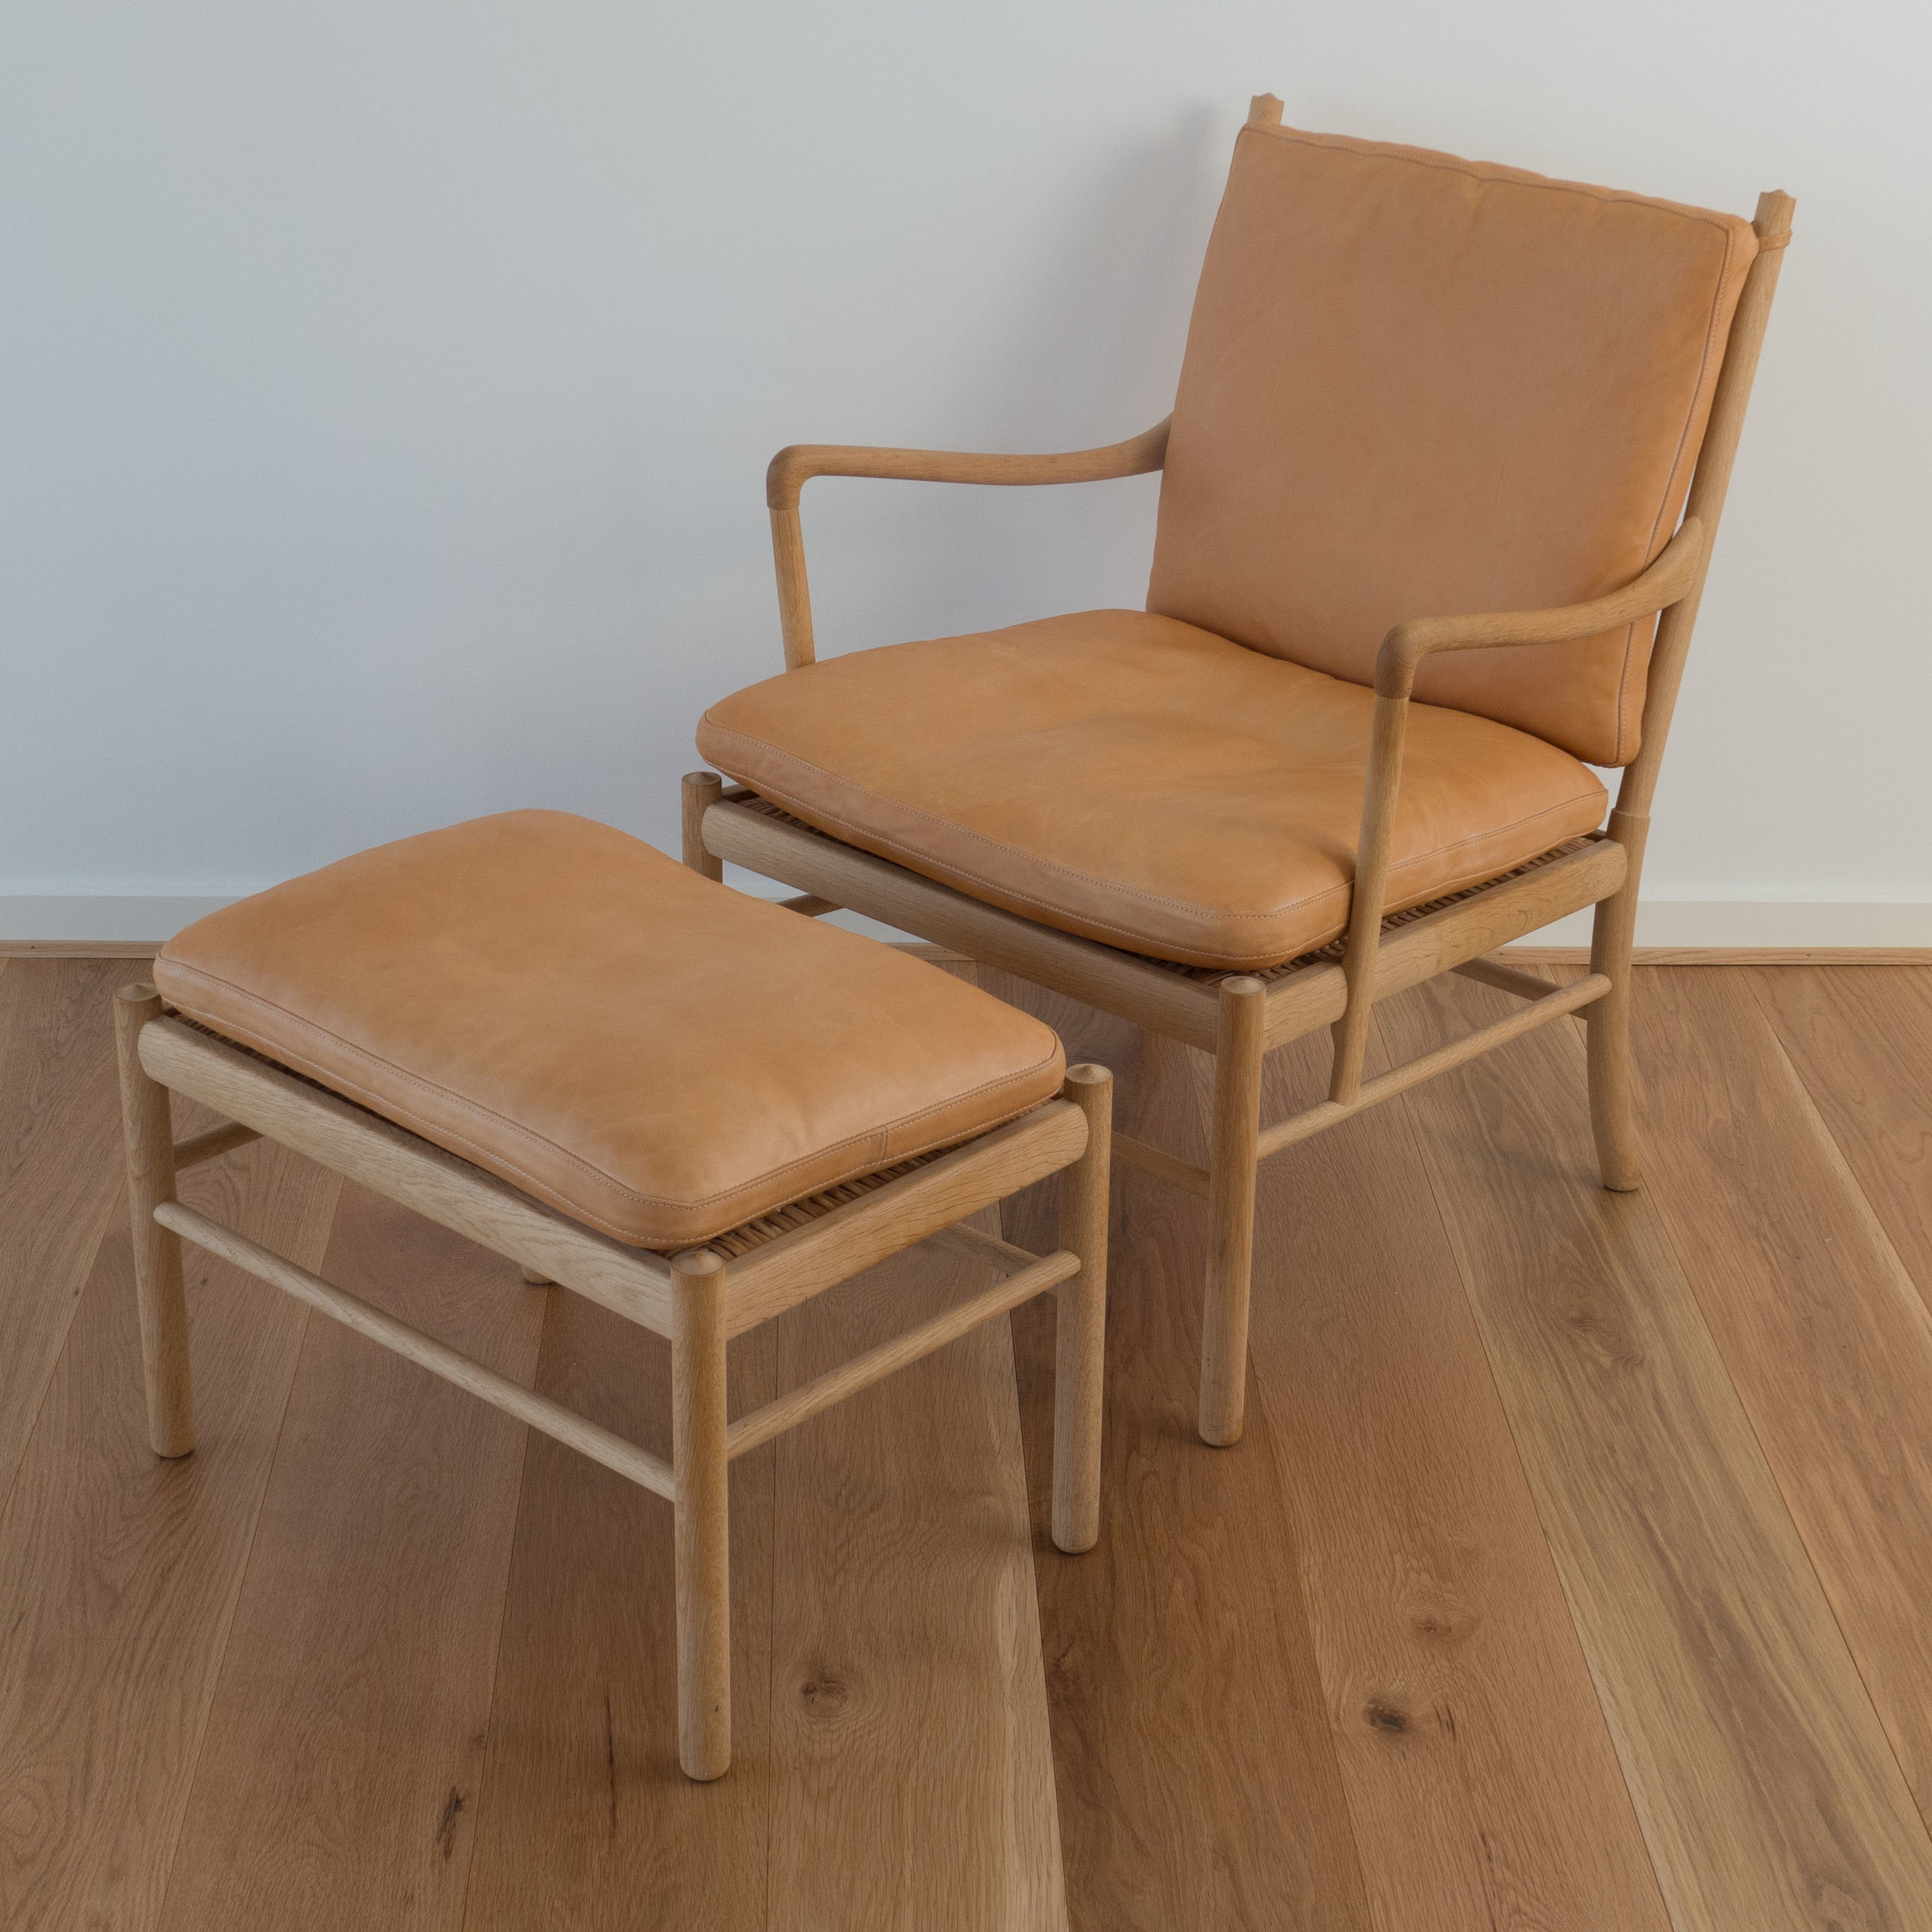 Wanscher chair and stool.jpg